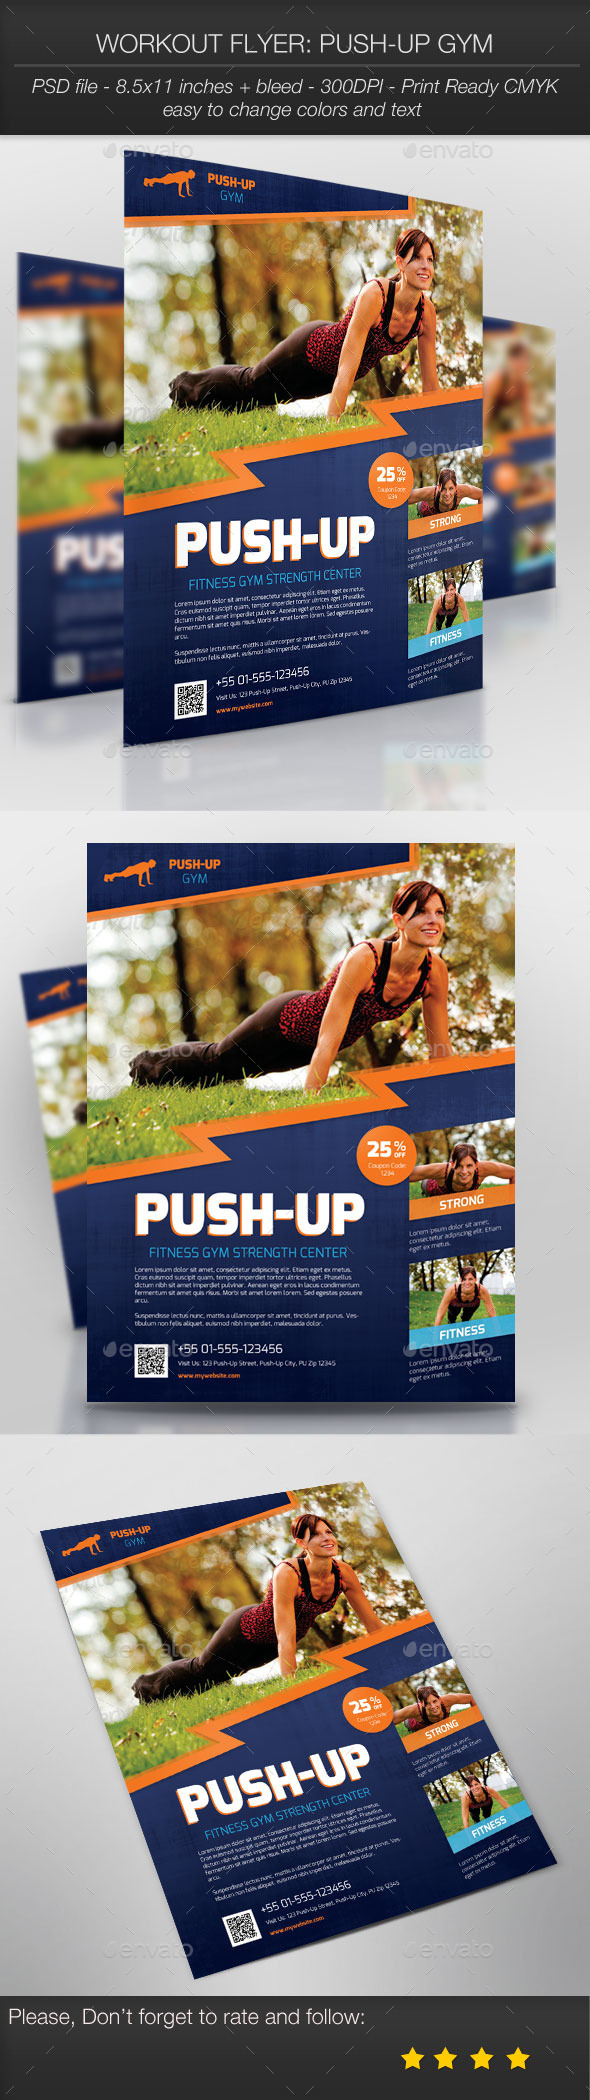 GraphicRiver Workout Flyer Push-Up Gym 9767386